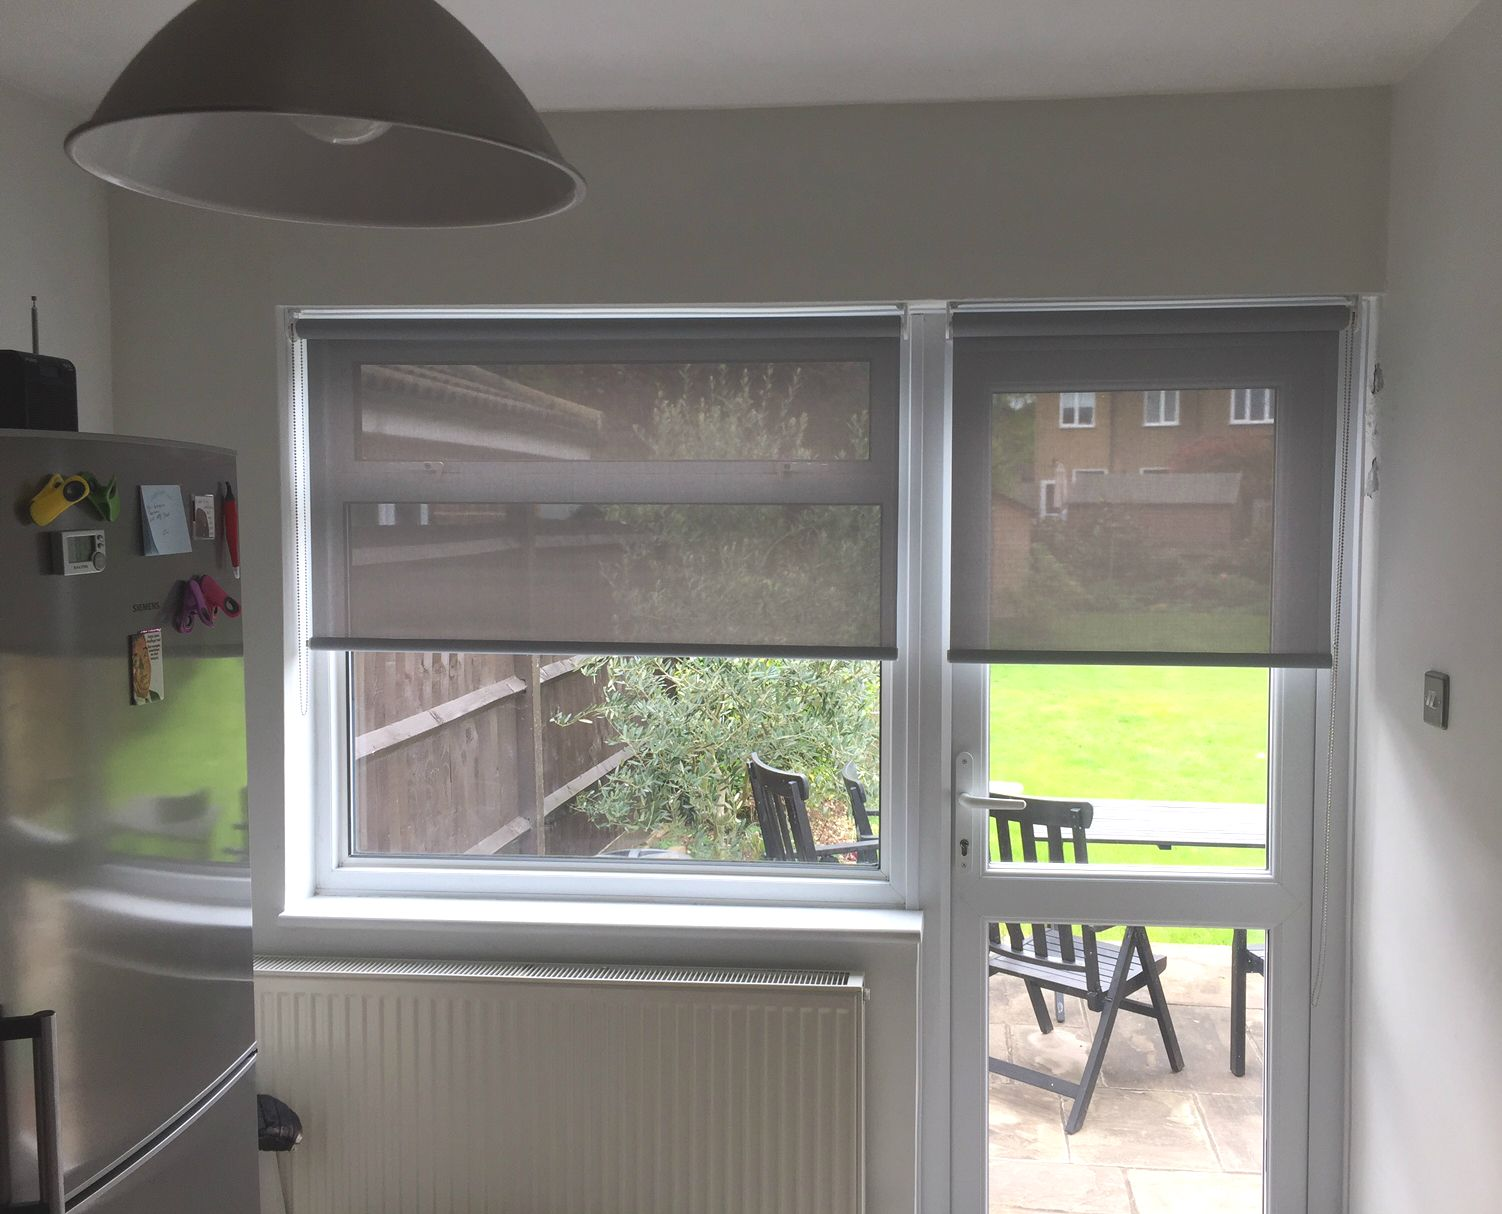 Products rollers in vogue blinds - Sunscreen Roller Blinds On Door And Window In Kitchen Surrey Made To Measure